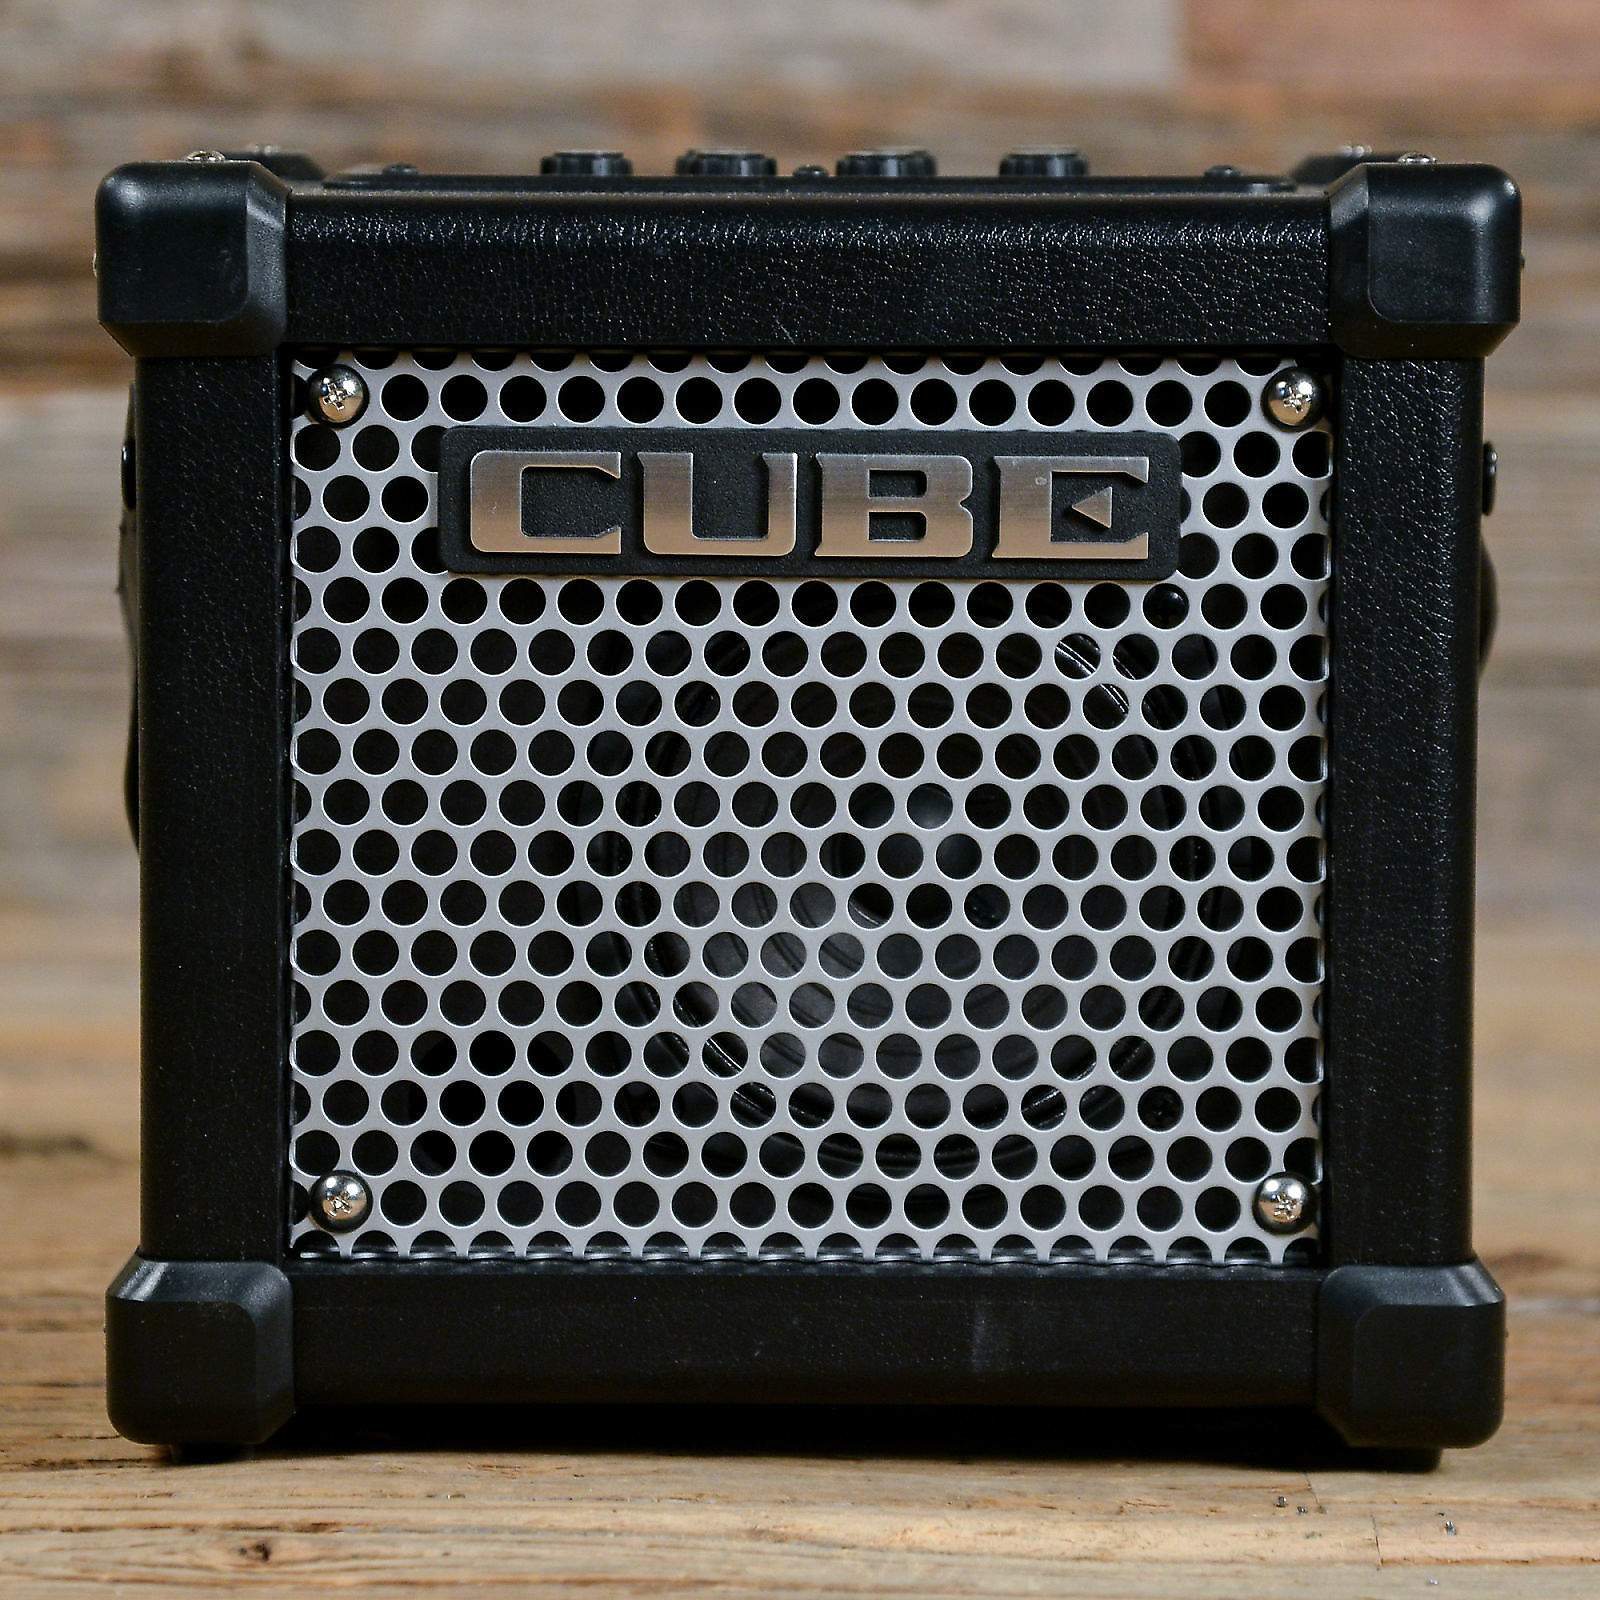 roland micro cube gx 3w 1x5 battery powered guitar reverb. Black Bedroom Furniture Sets. Home Design Ideas